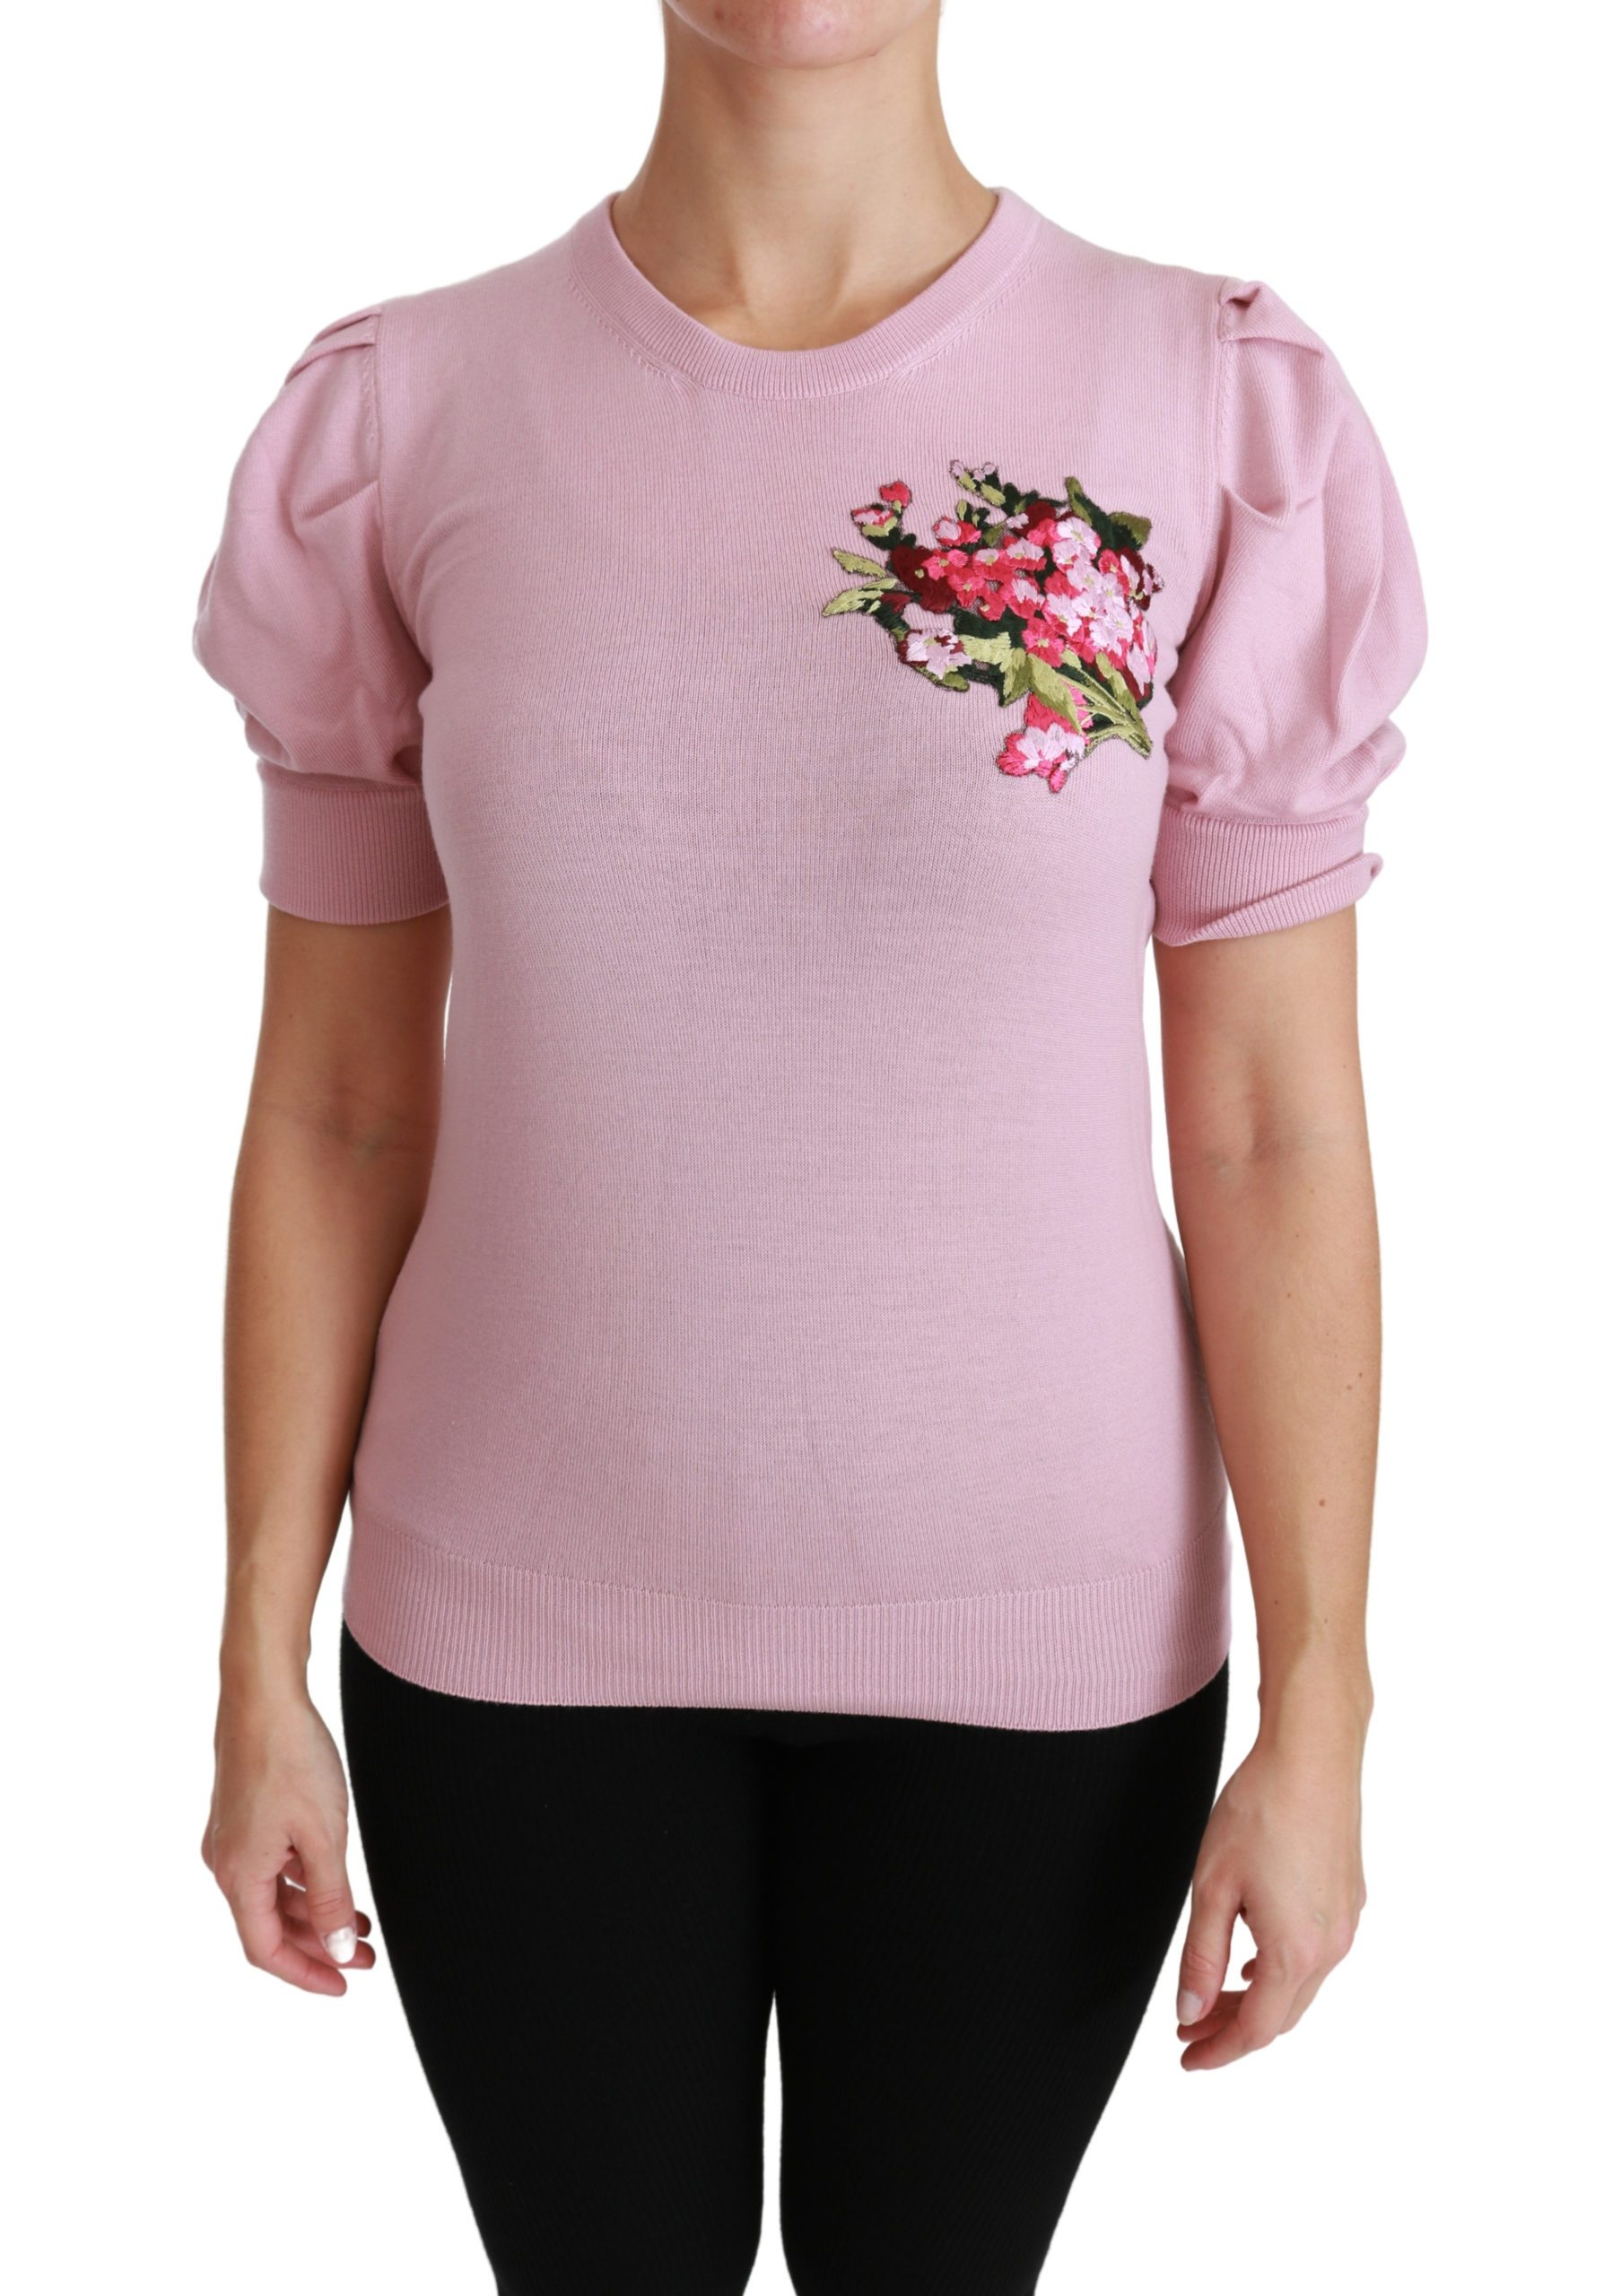 Dolce & Gabbana Women's Floral Embroidered Top Pink TSH4457 - IT46|XL